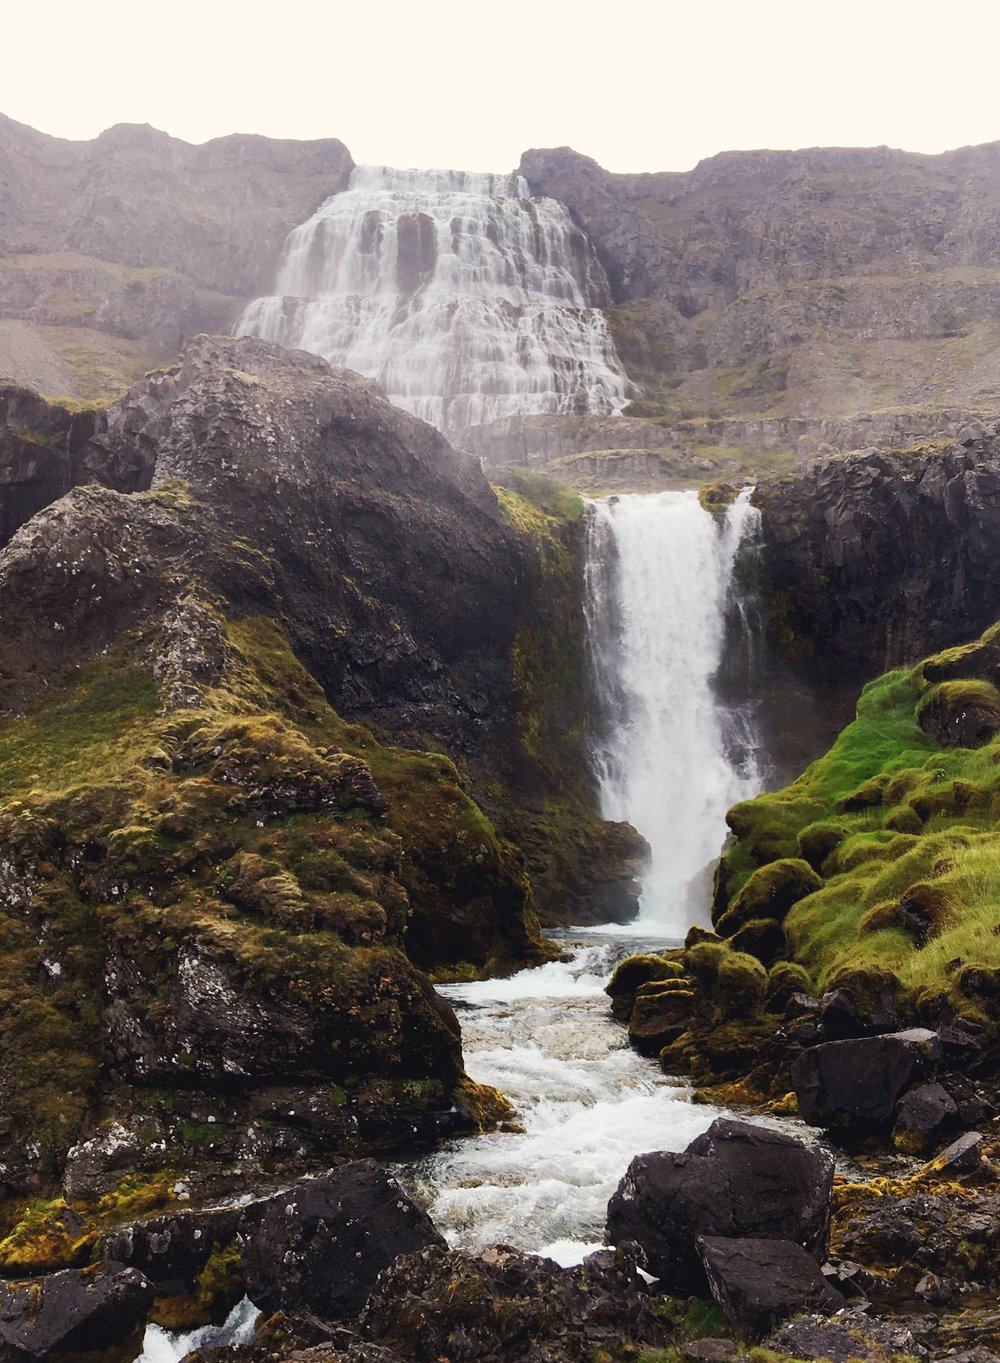 Seriously an epic waterfall. It is so tall and in the middle of rocks. No other nature for miles!